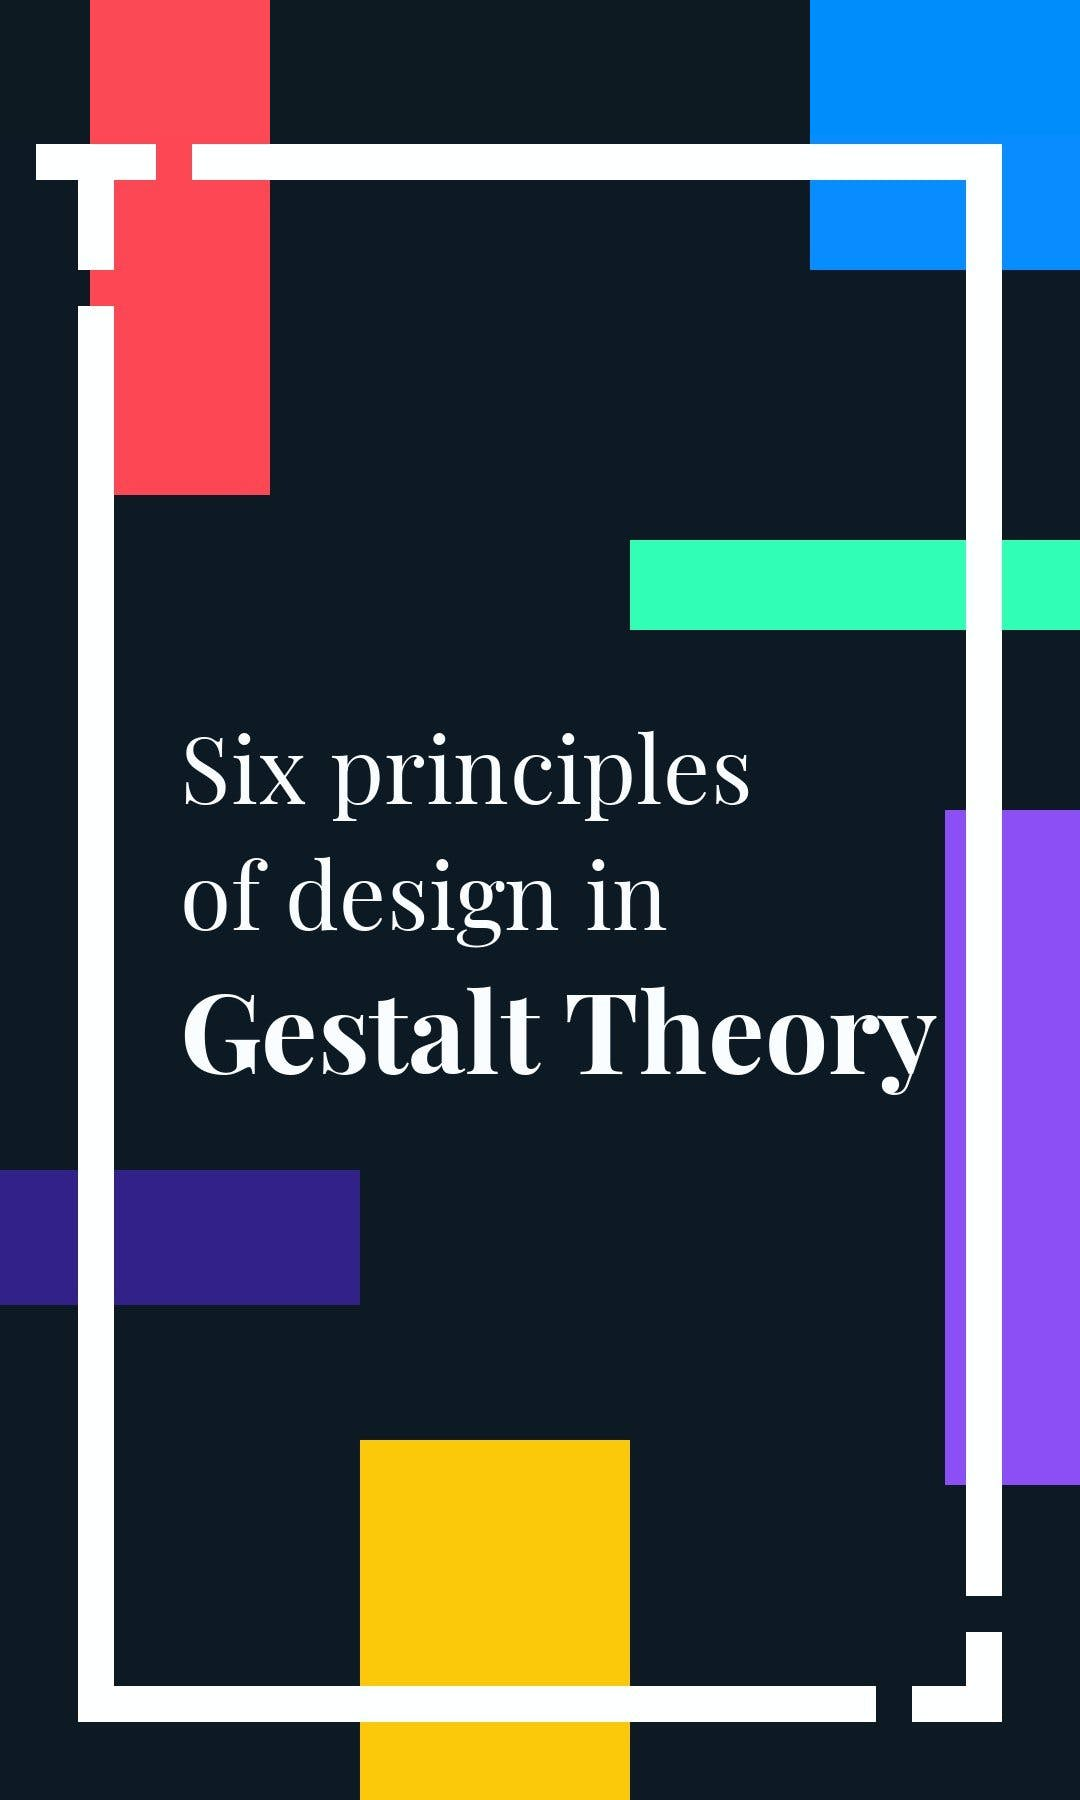 Cover image of a Tappable web story showing the Gestalt's theory